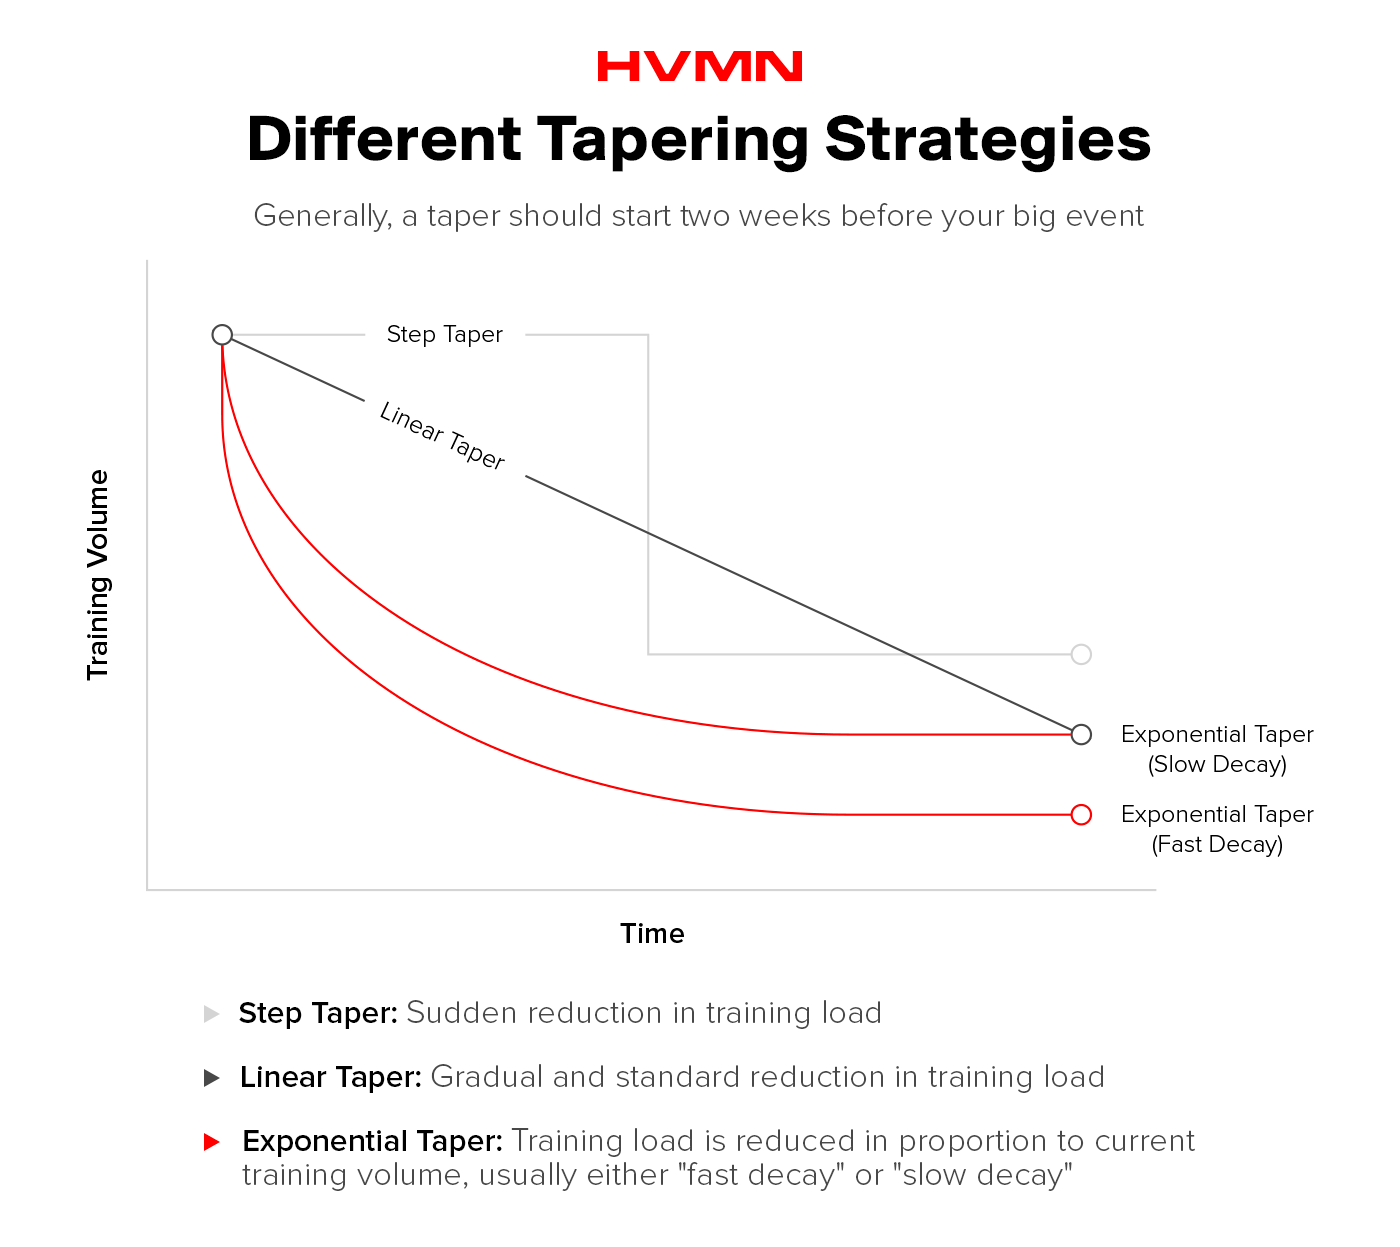 A chart that illustrates the different tapering strategies